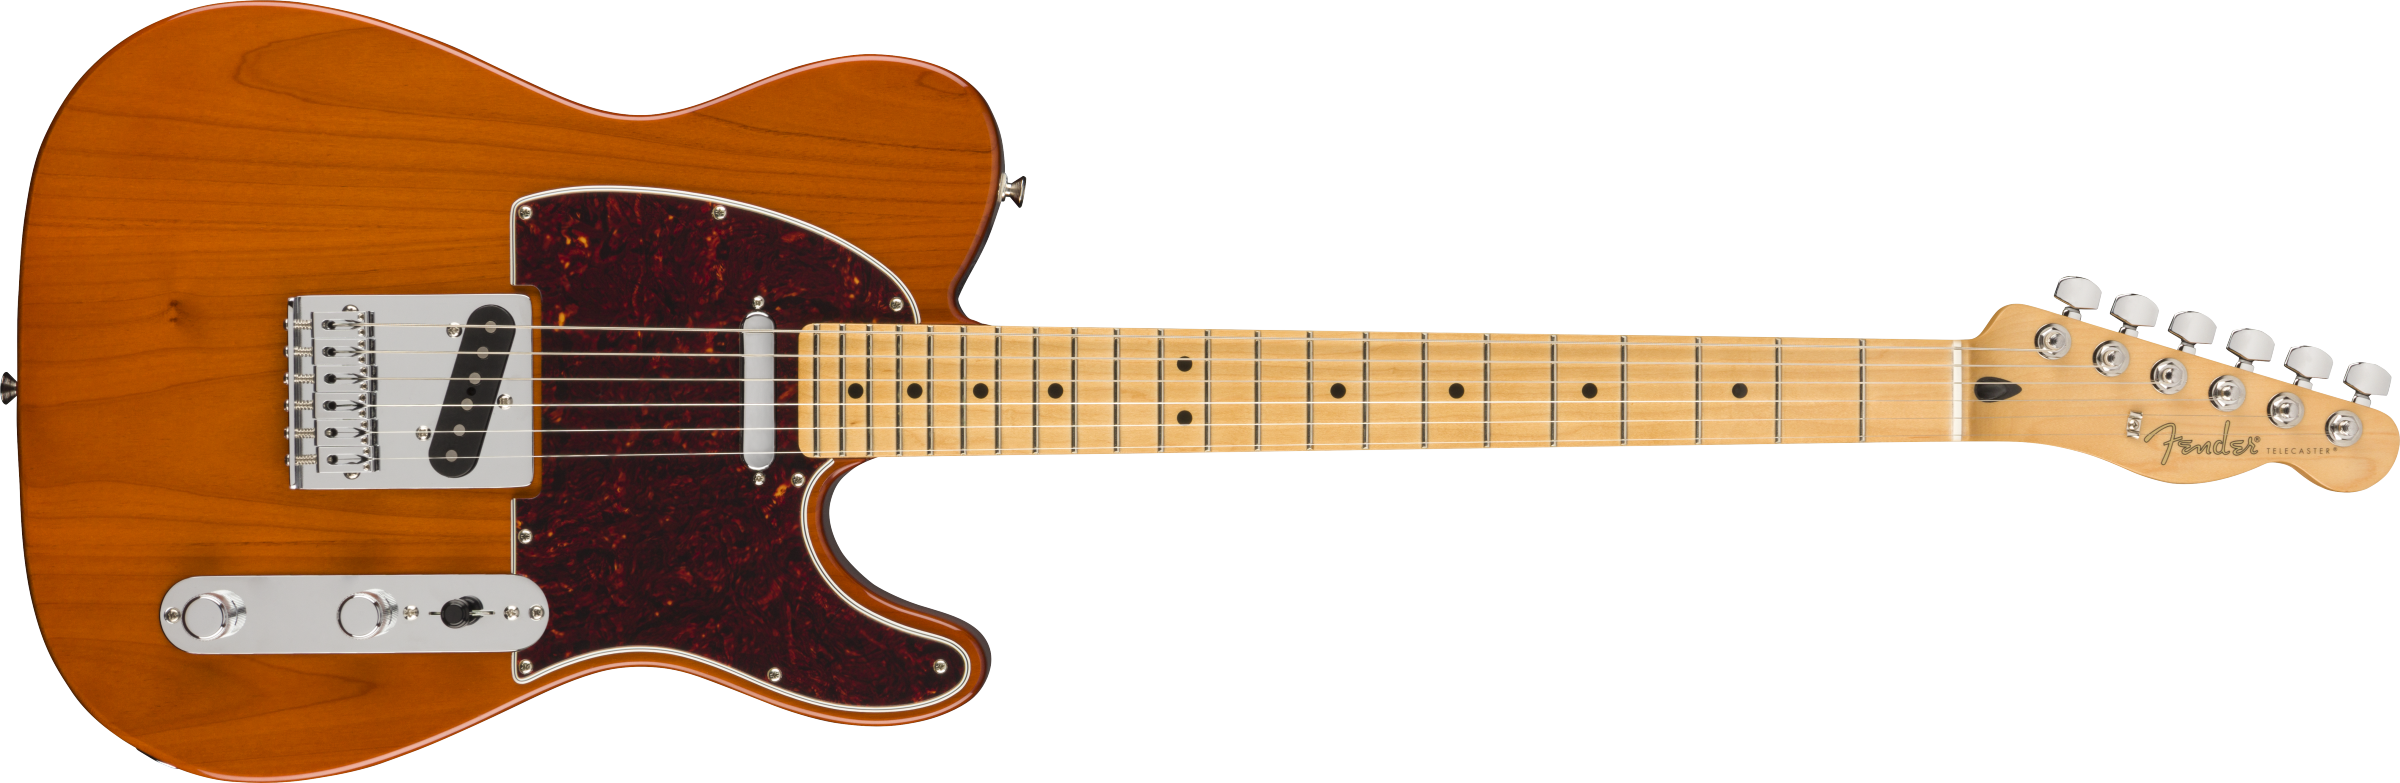 Fender LTD Player Tele AGN